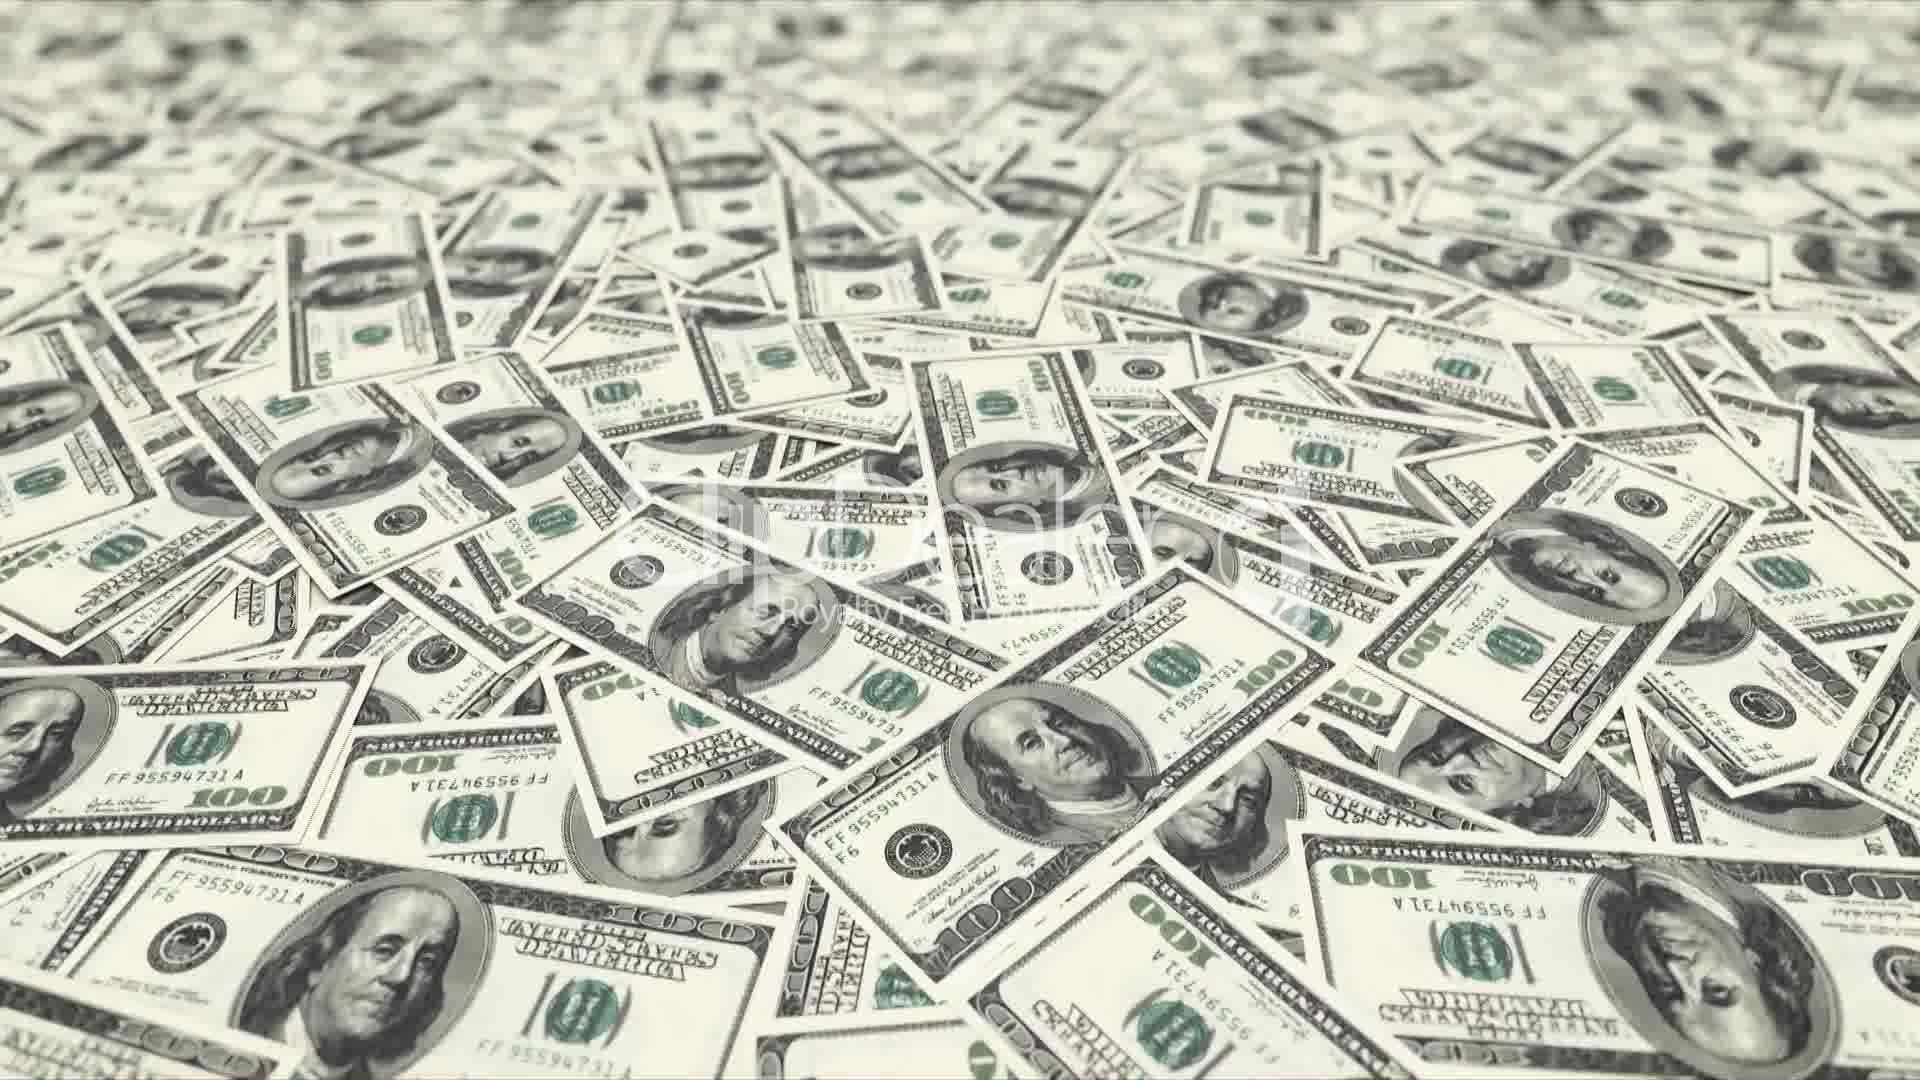 Money Background Wallpaper - WallpaperSafari